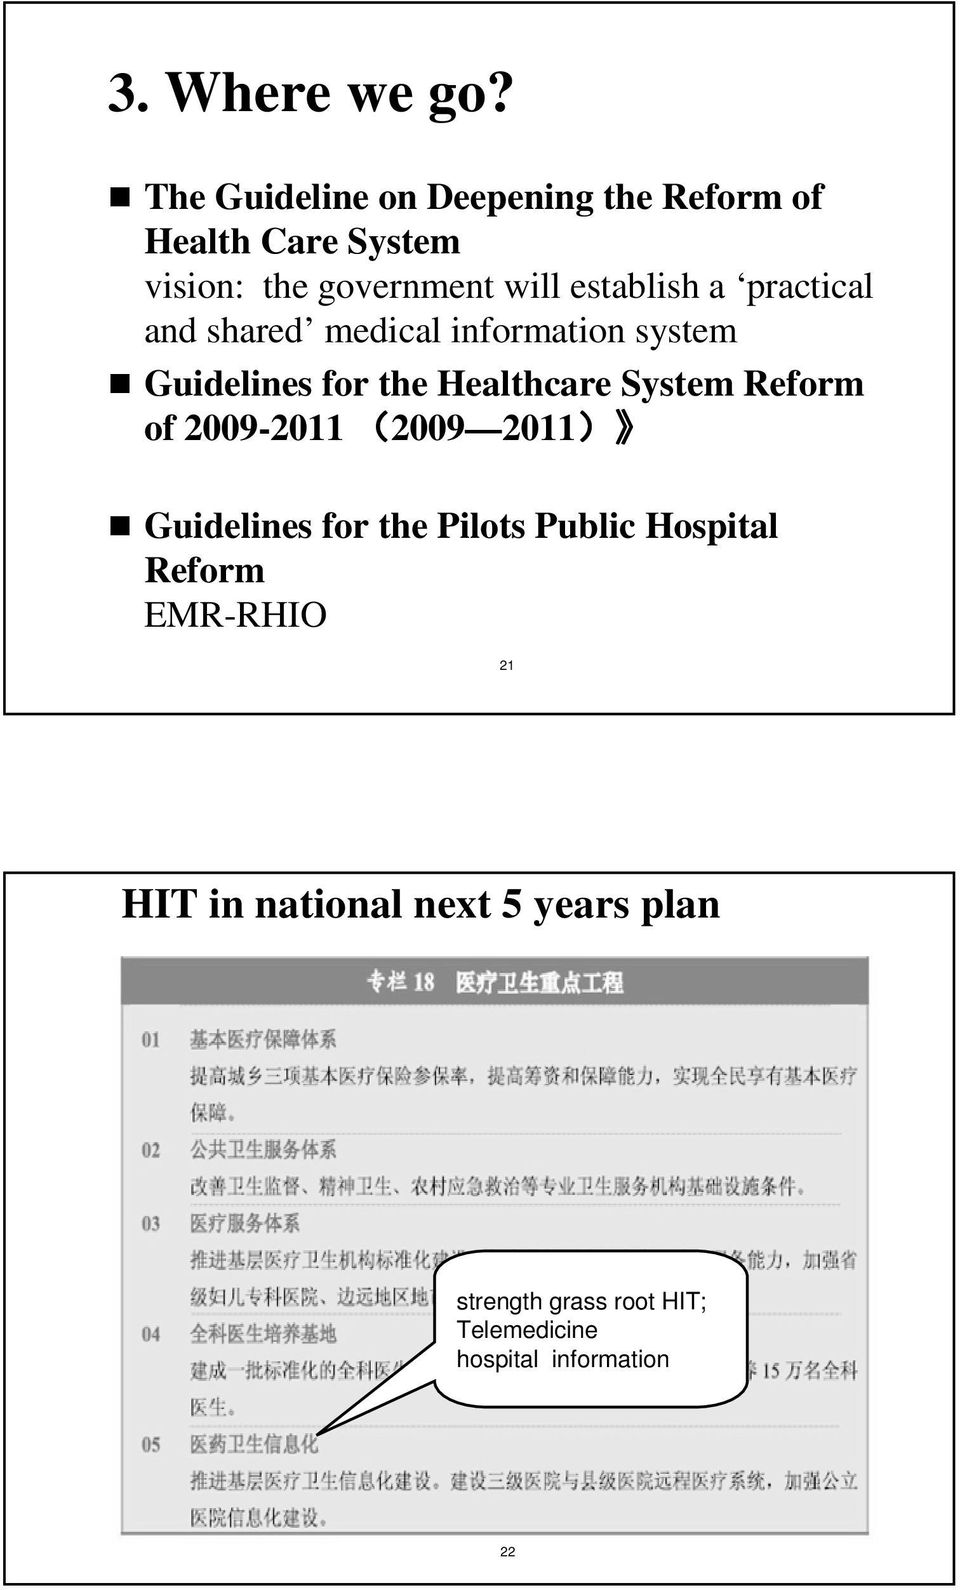 a practical and shared medical information system Guidelines for the Healthcare System Reform of